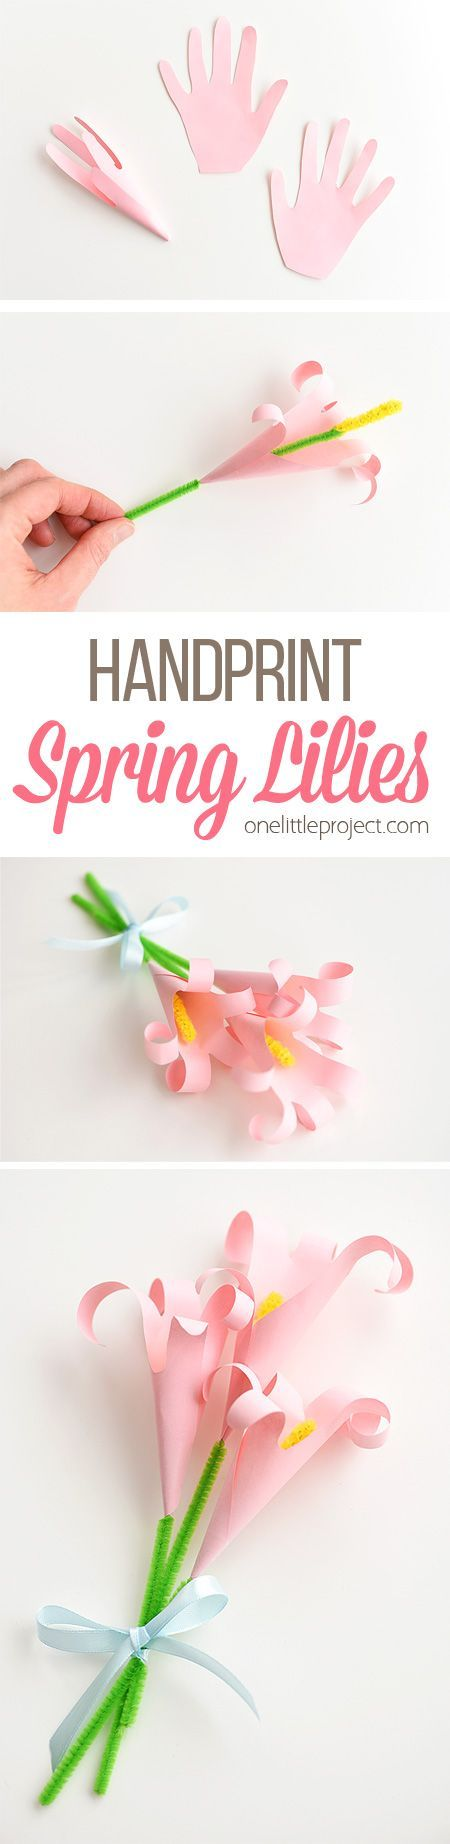 These handprint lilies are so easy to make and they look so beautiful! You can use coloured paper and make a bouquet of handprint lilies for Mother's Day. Or if you make them with white paper they make lovely Easter lilies. They're such an awesome Mother's day craft and a low mess Easter craft idea!